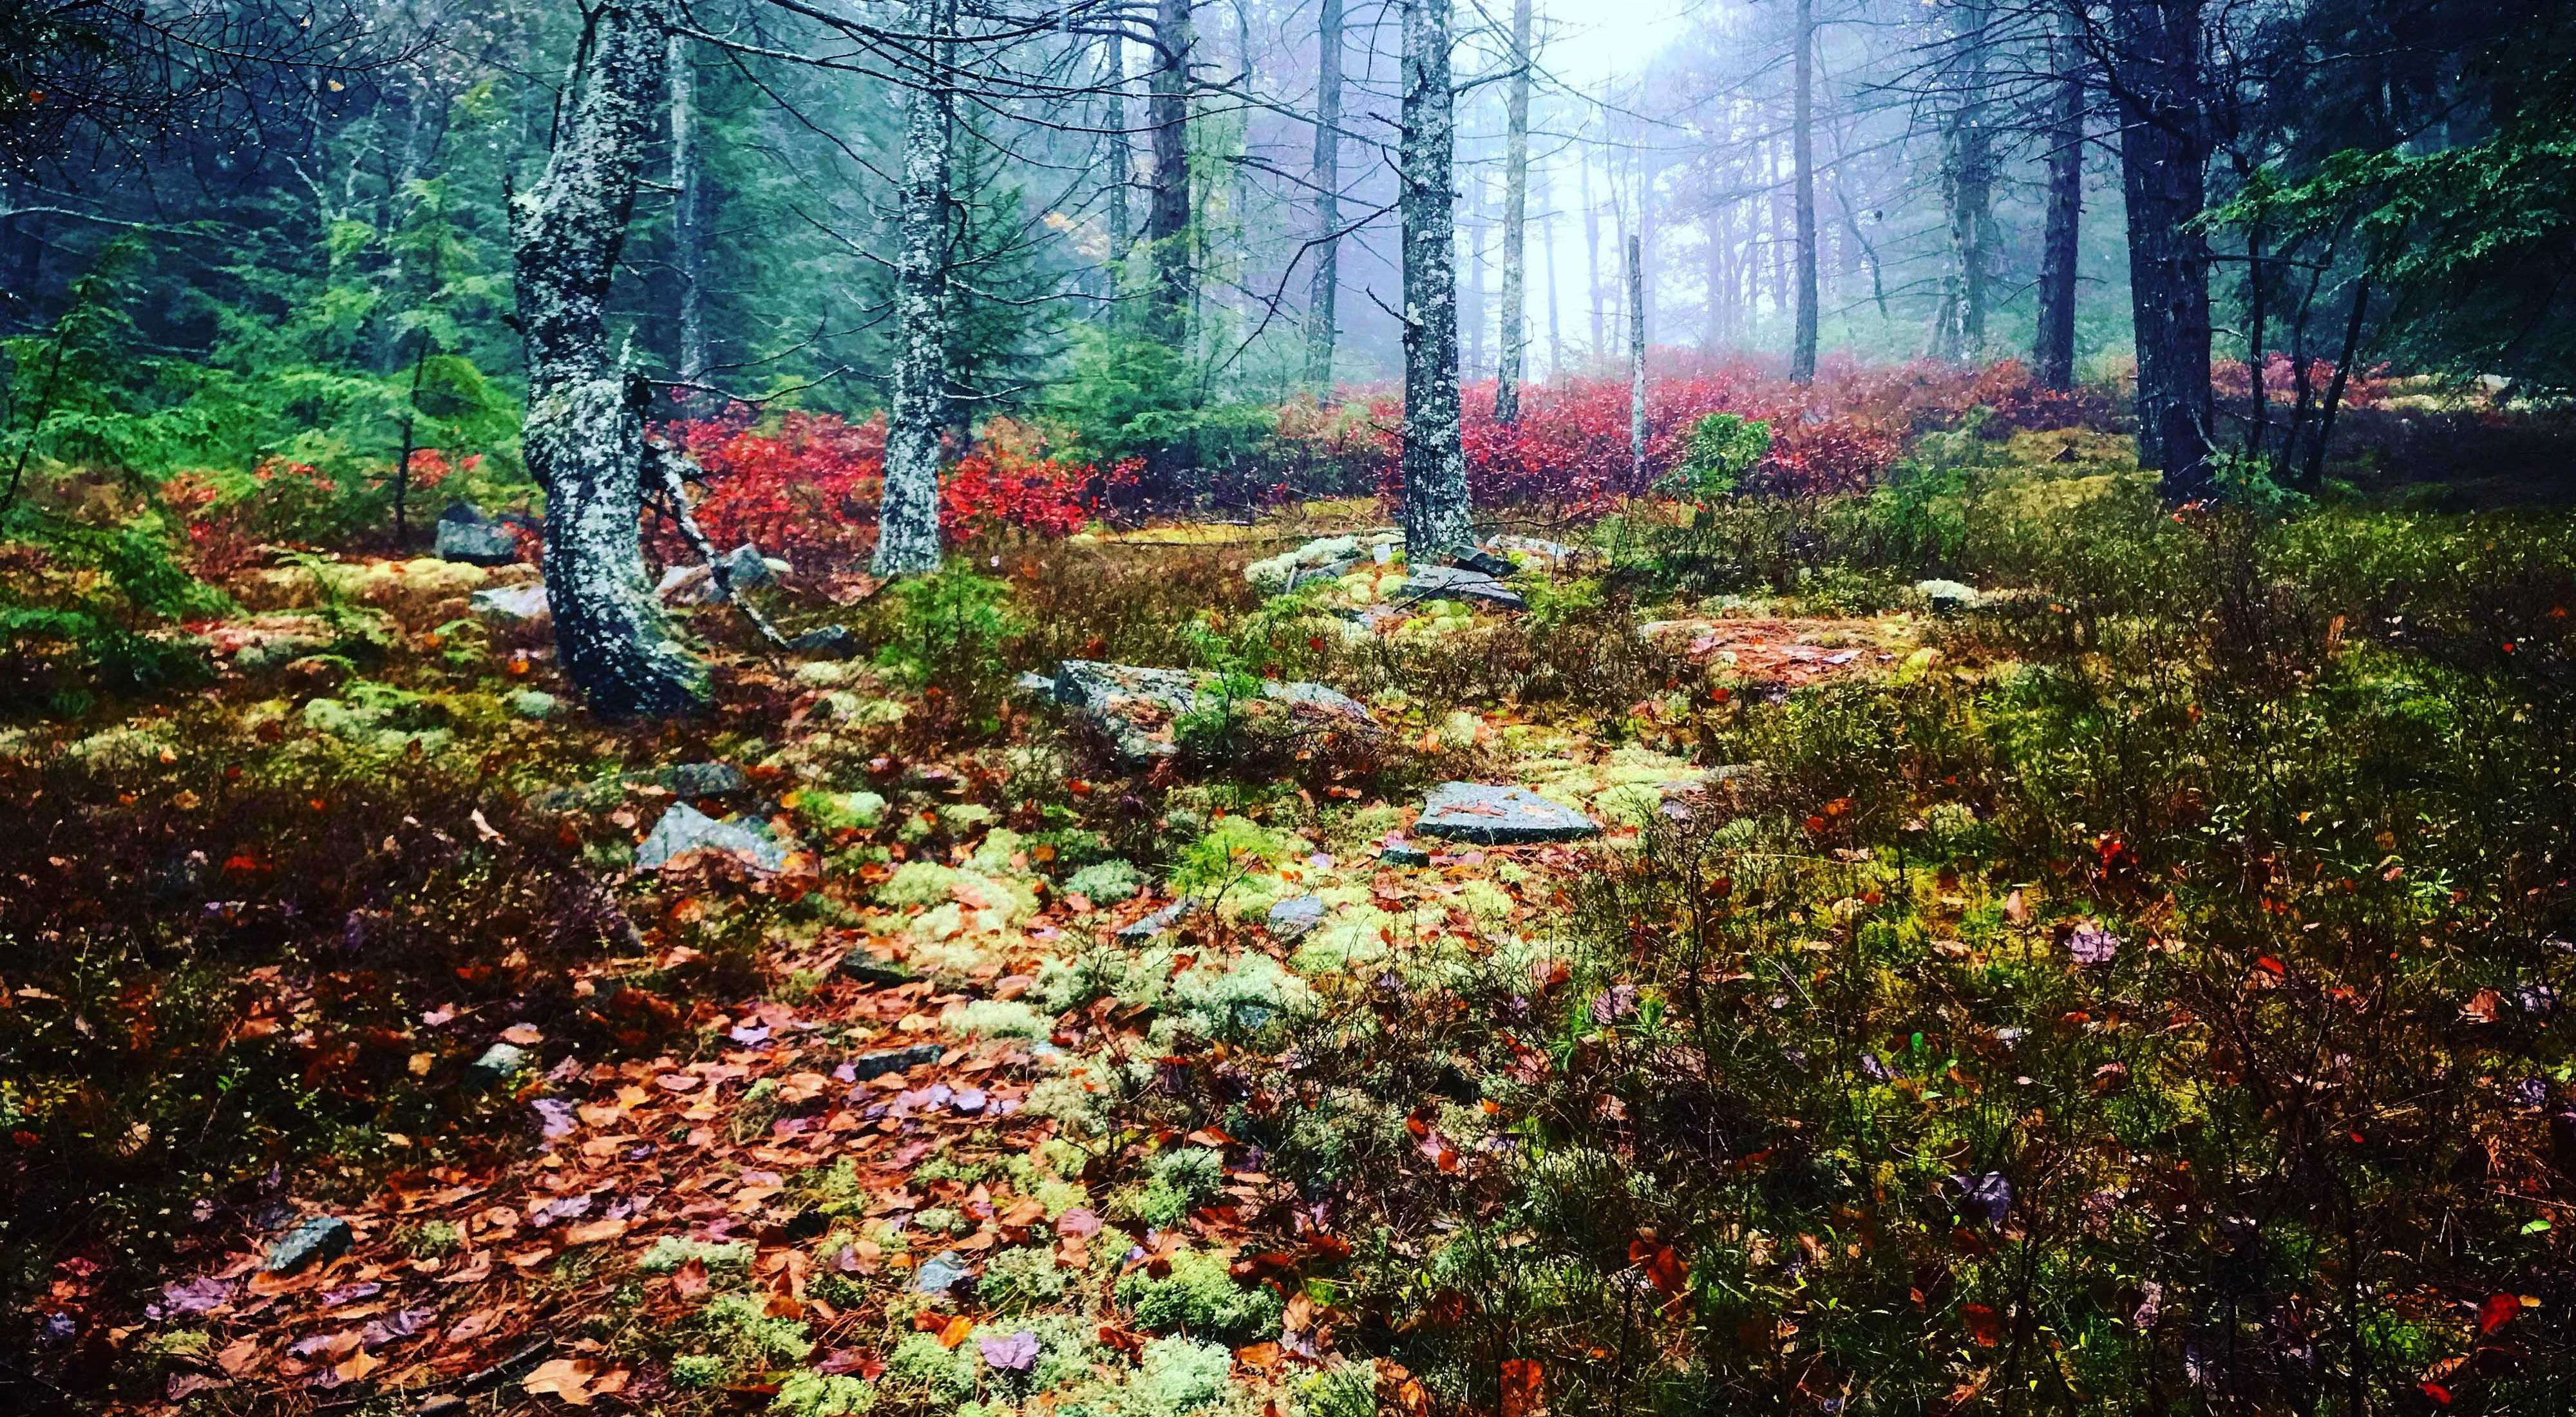 Misty woods with trees, moss and lichens.